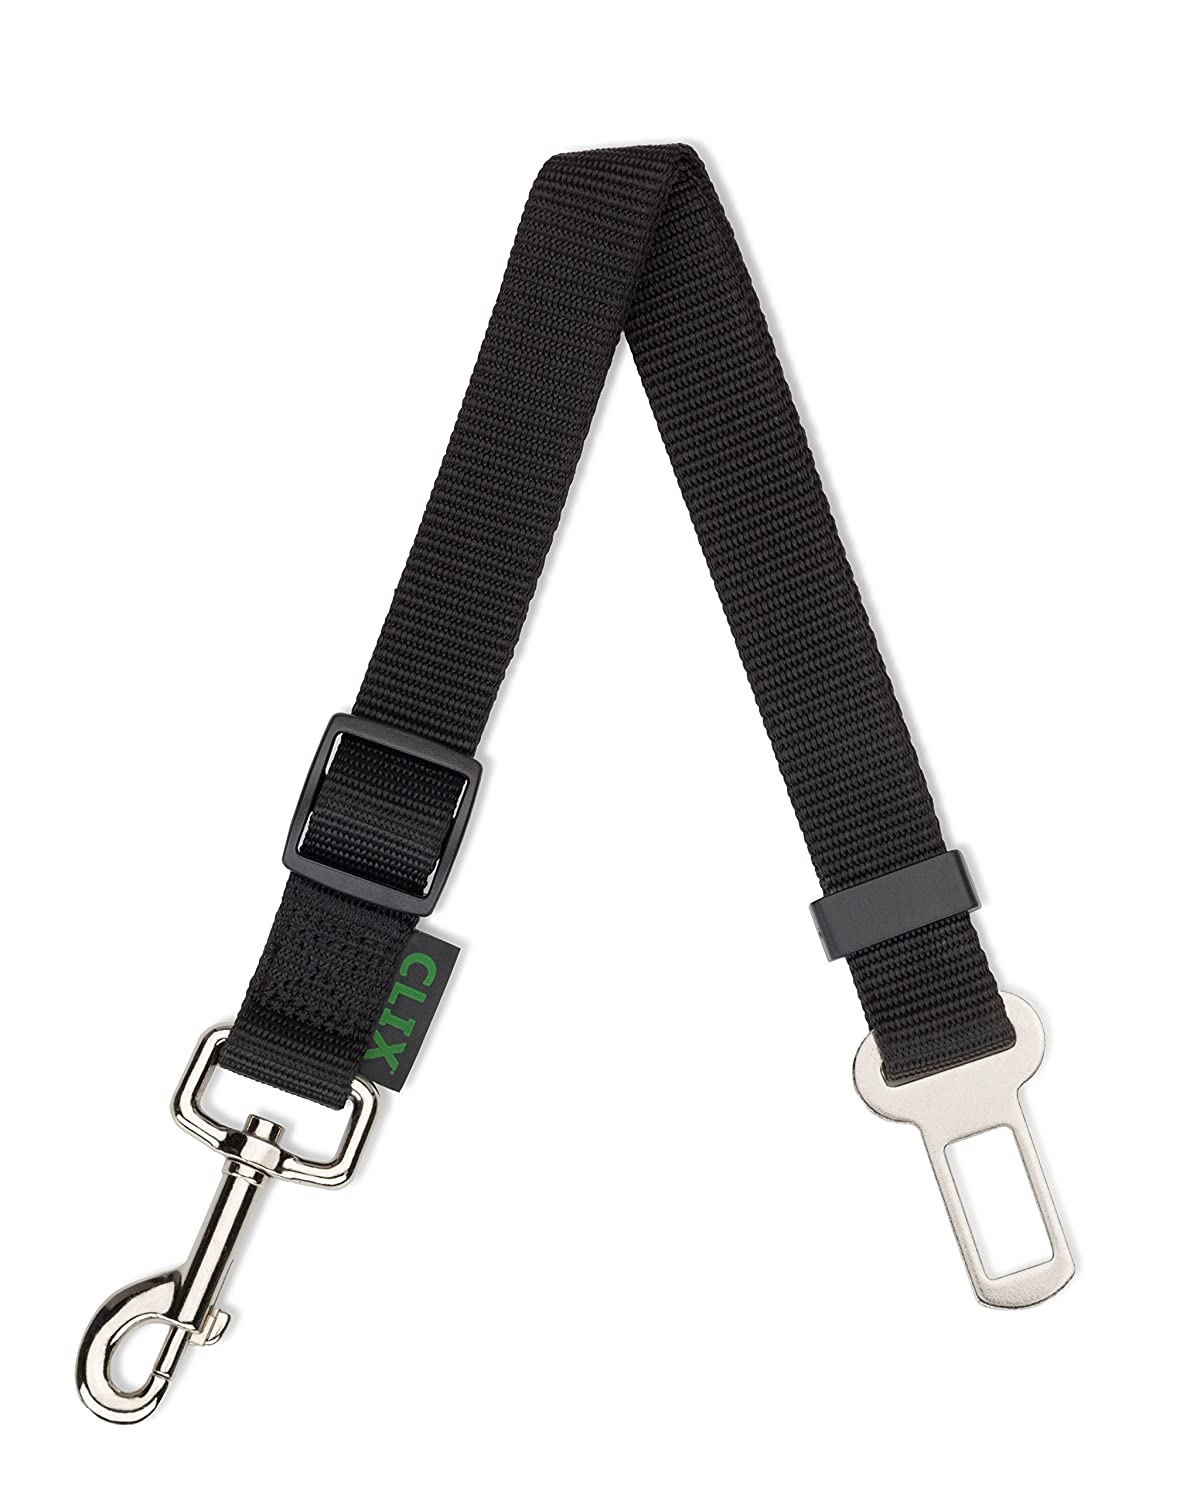 Company of Animals The 0886284296601 - Clix universal seat belt The Company Of Animals LCA